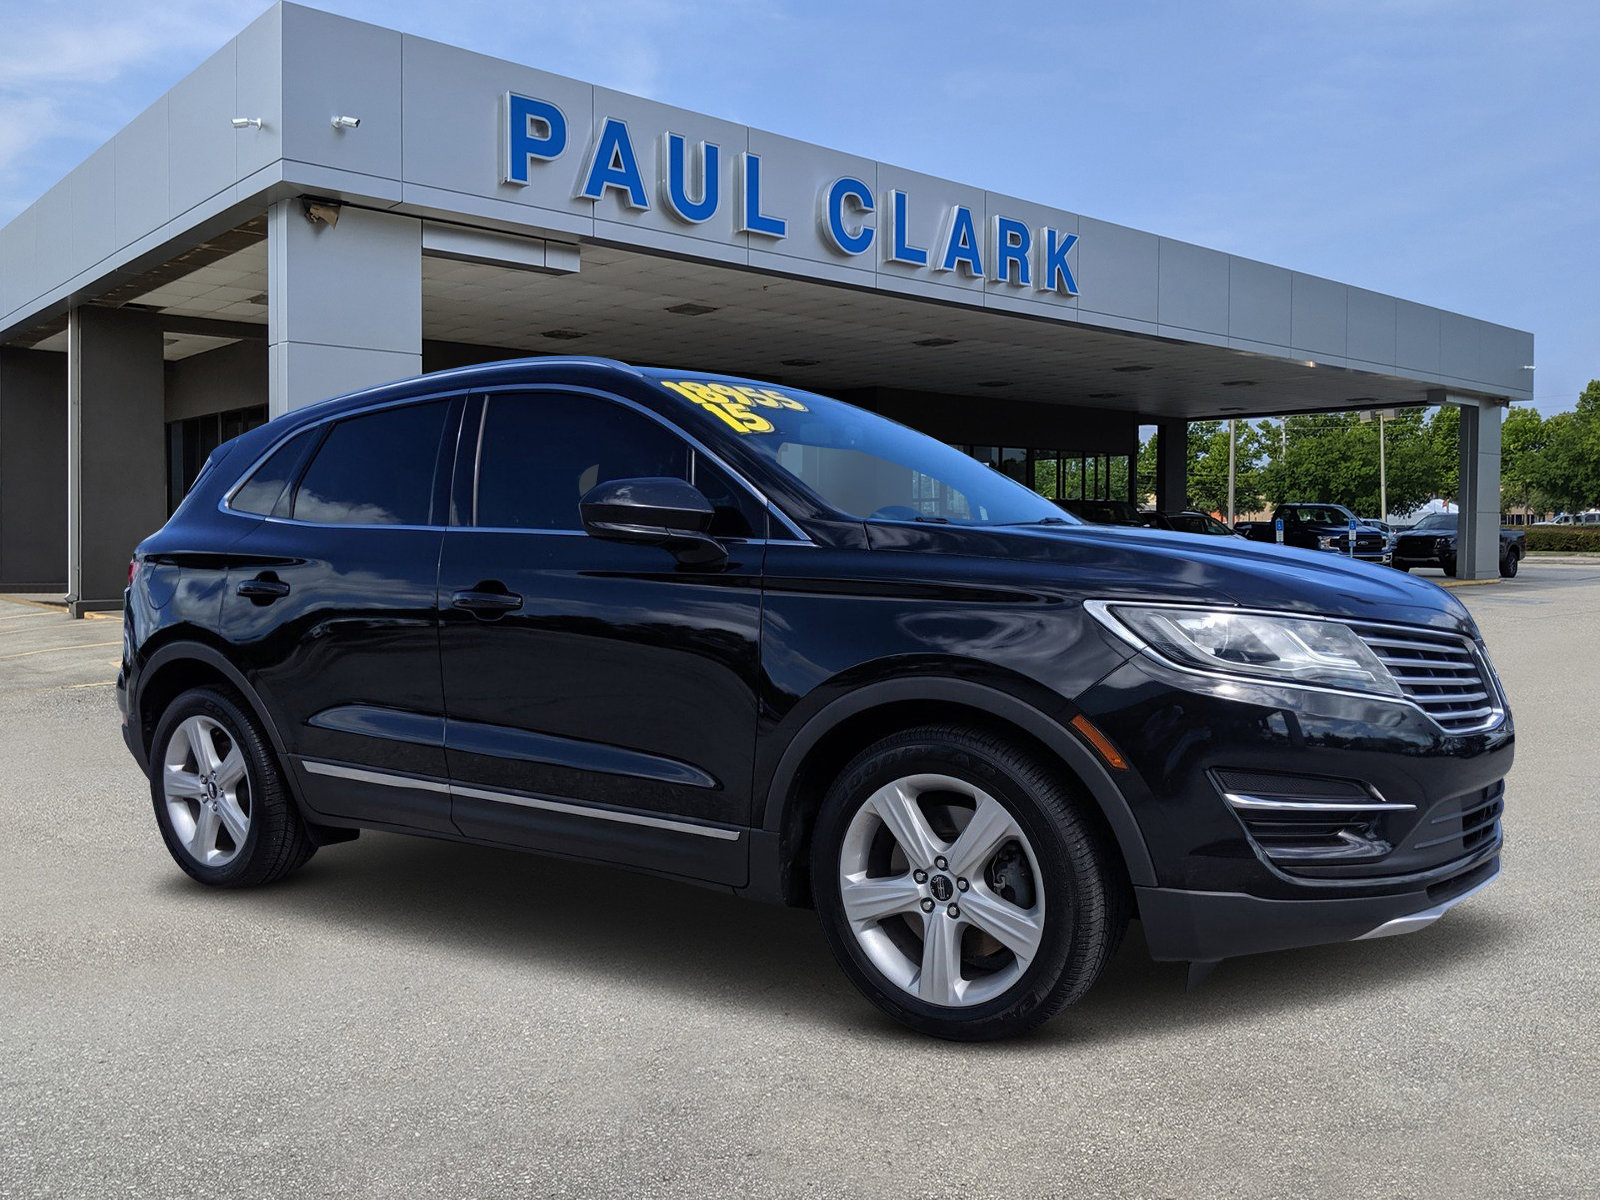 2015 Lincoln MKC FWD image